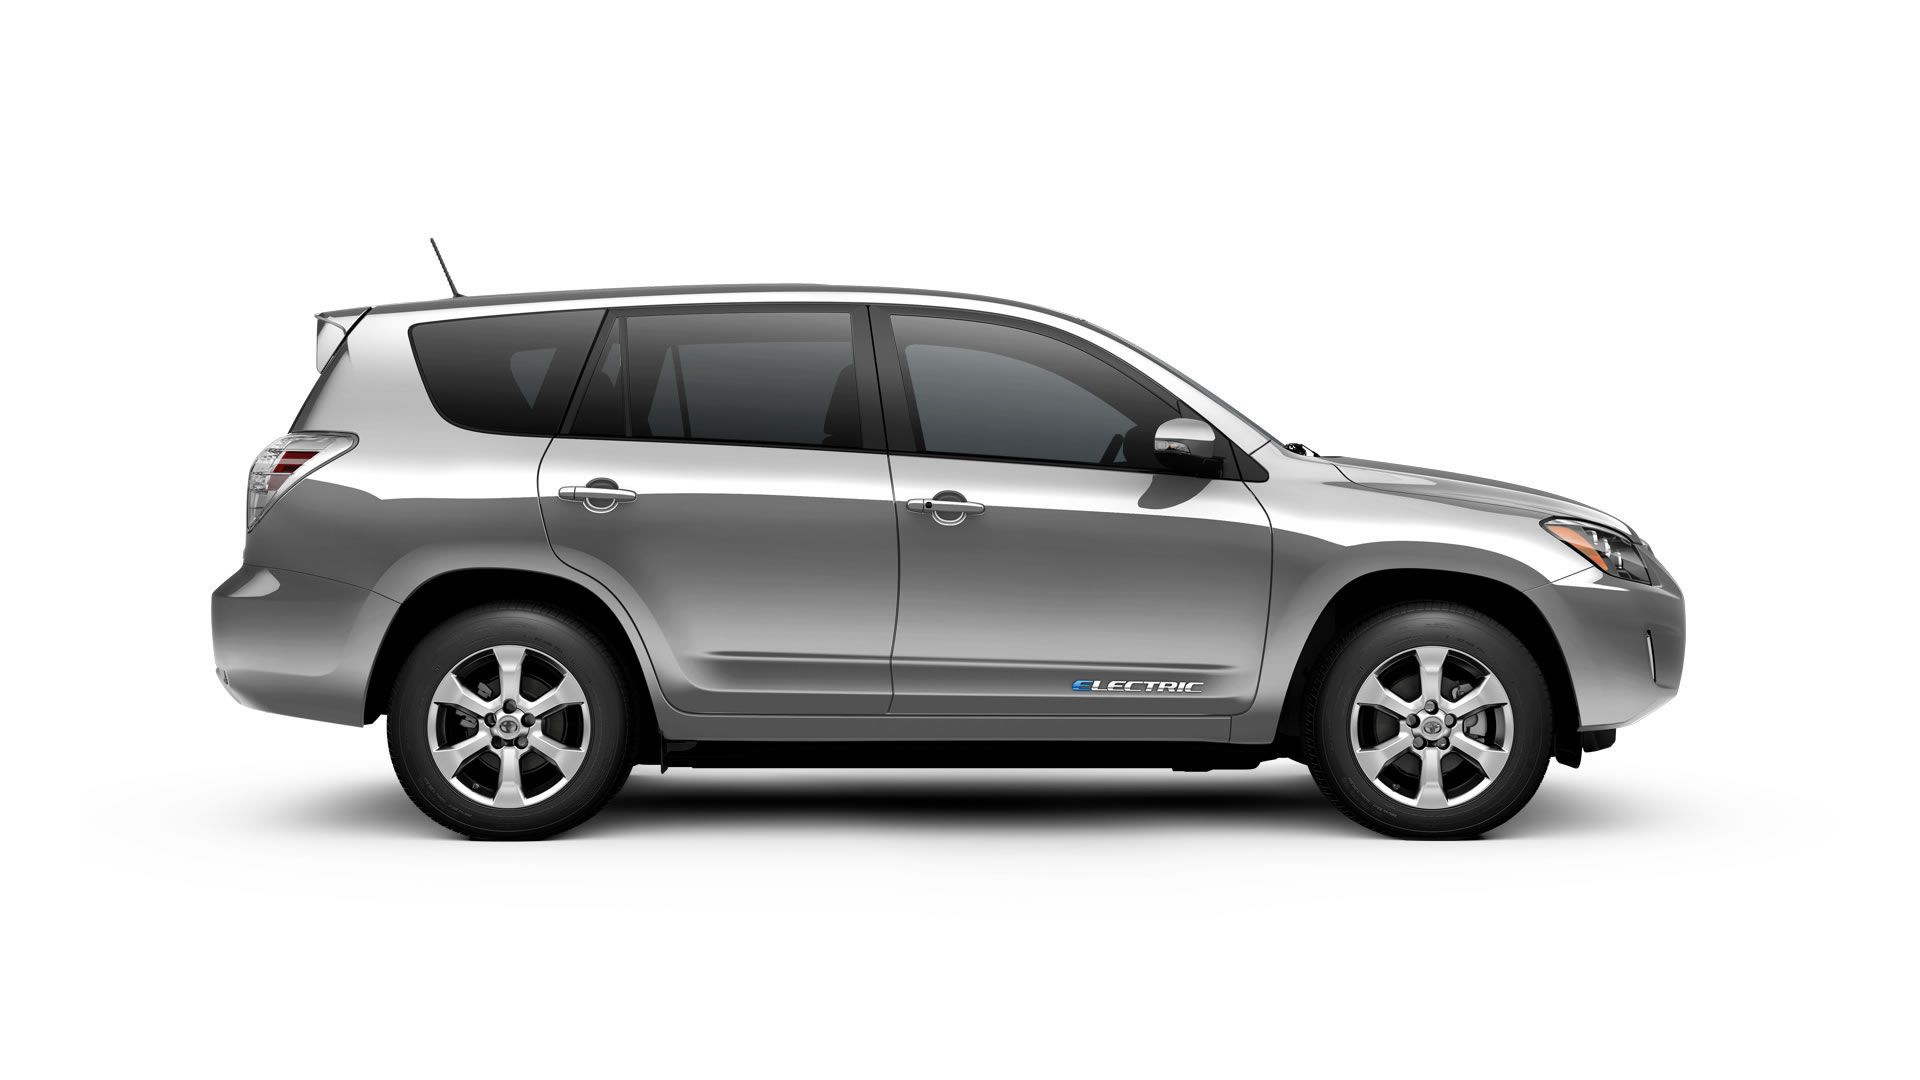 A design that will make you look twice. Toyota rav4